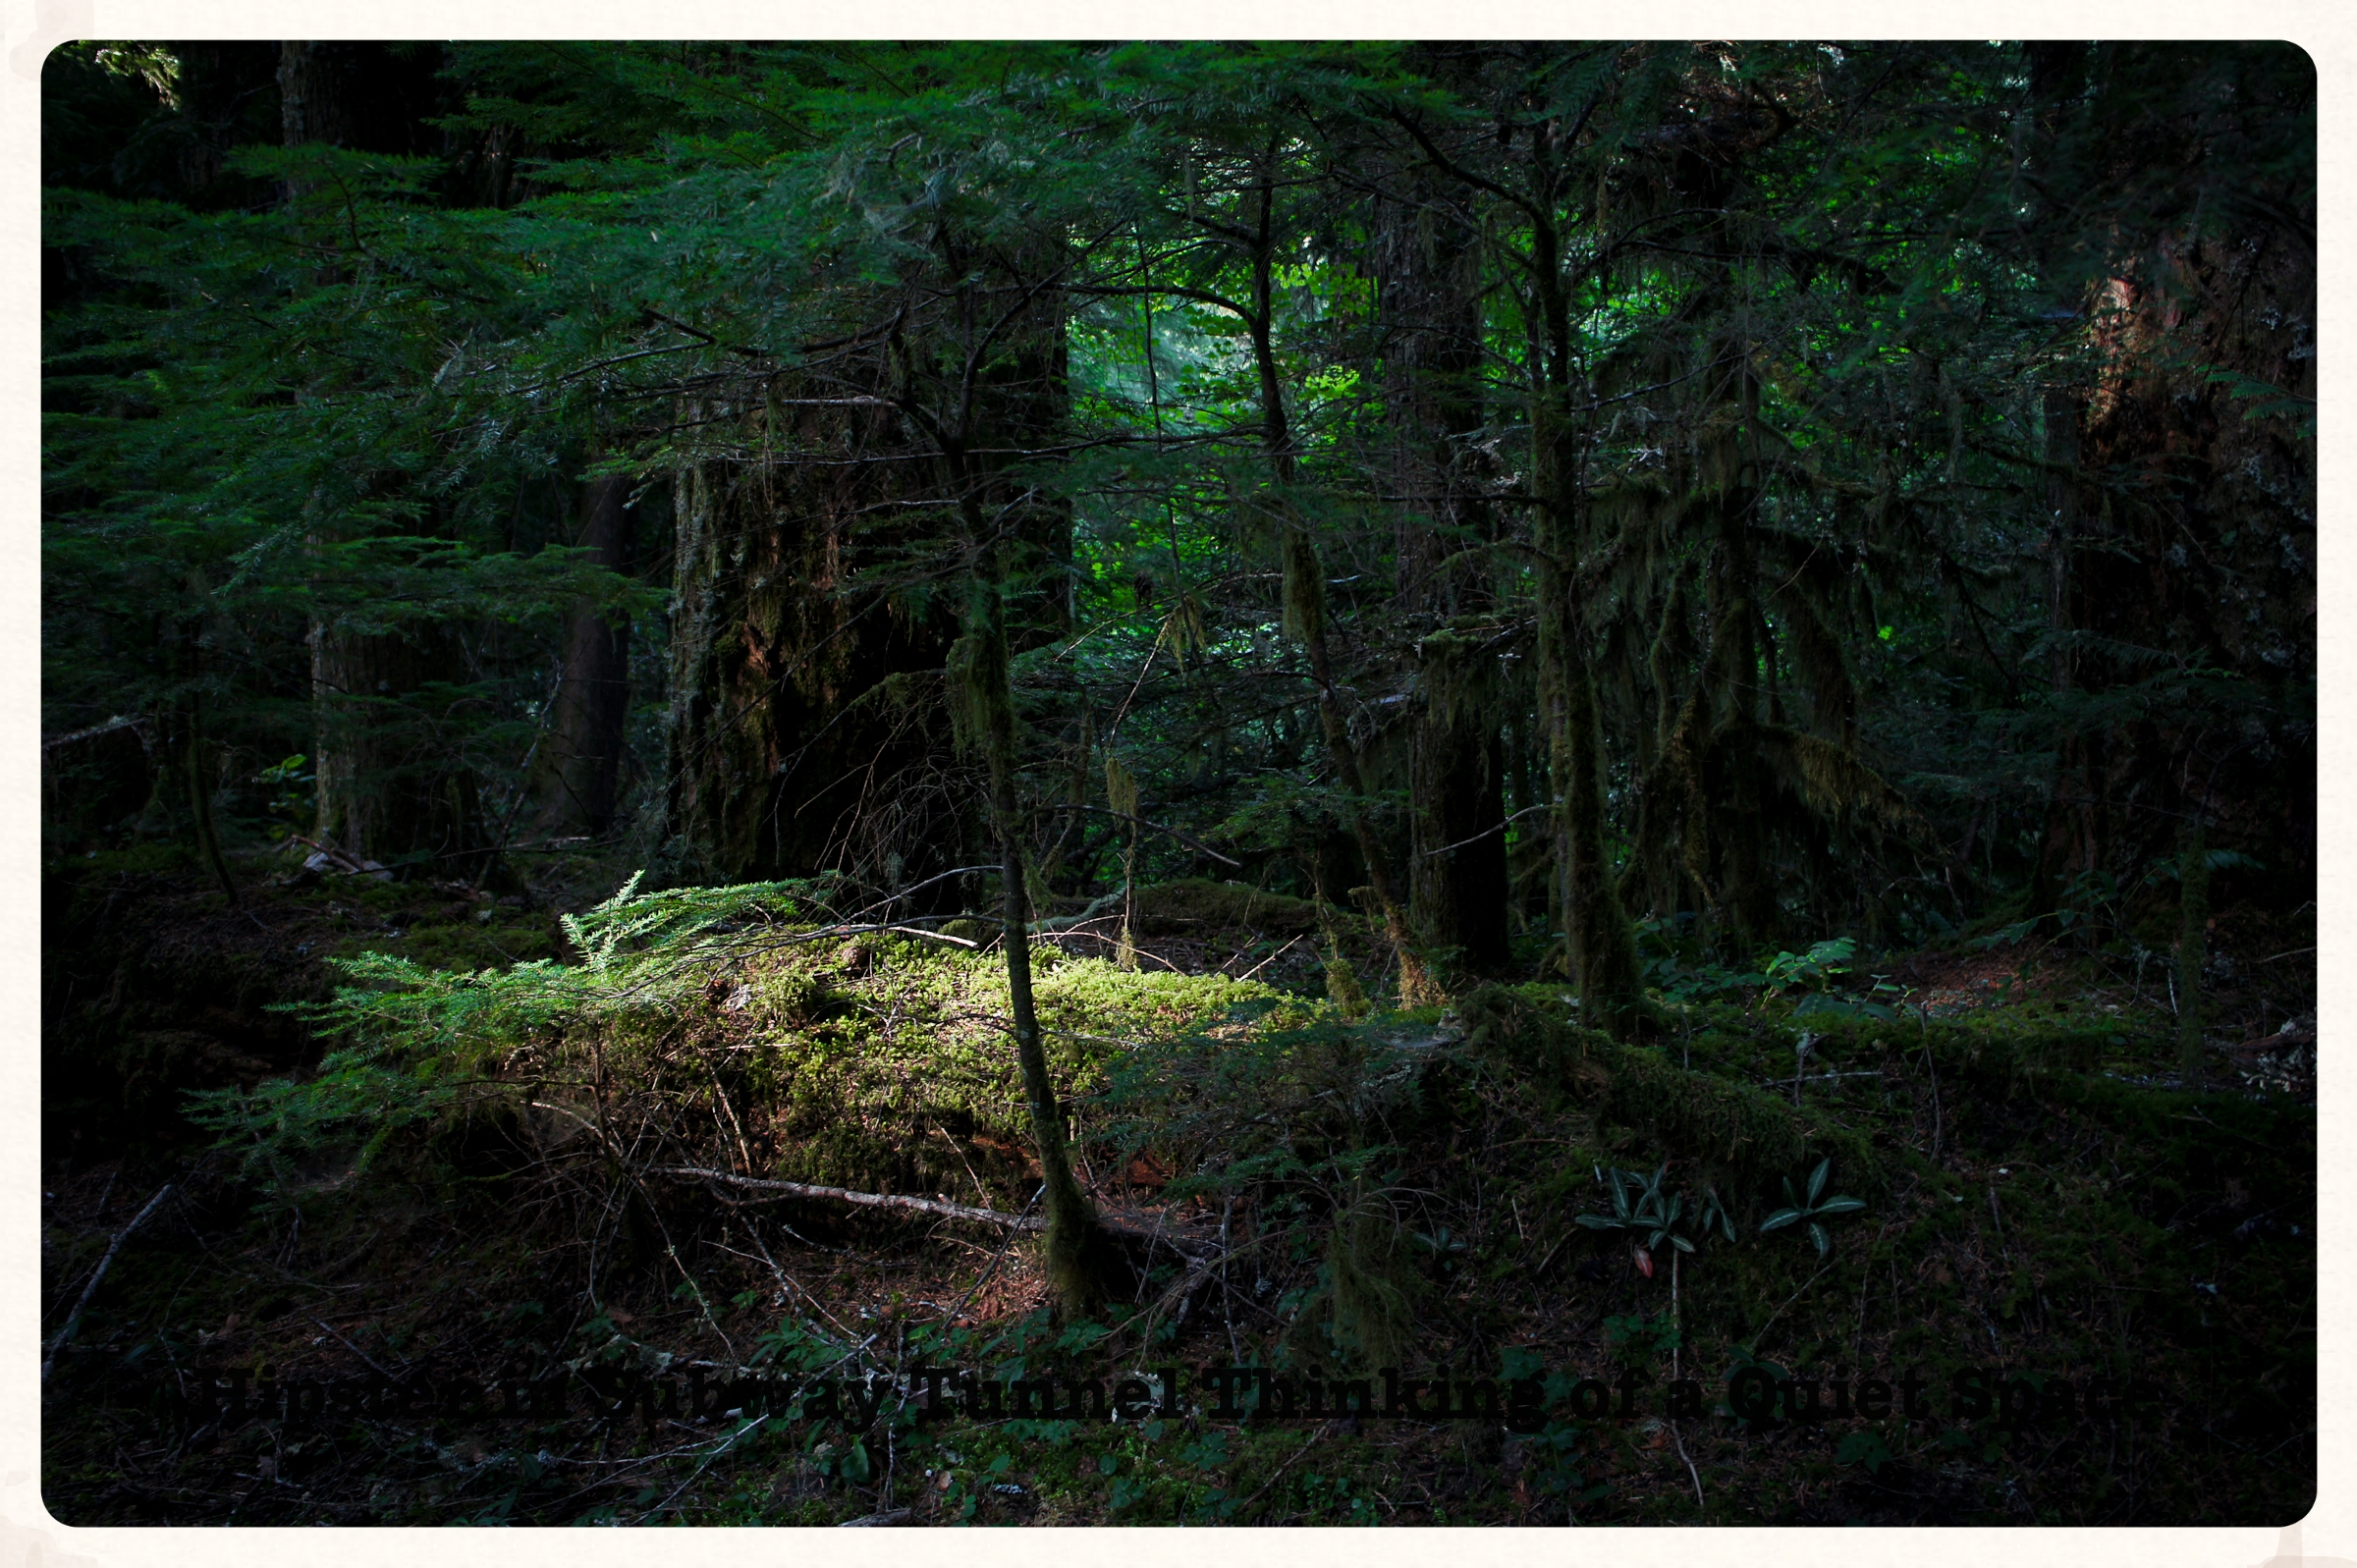 Photograph from my time exploring the forest...